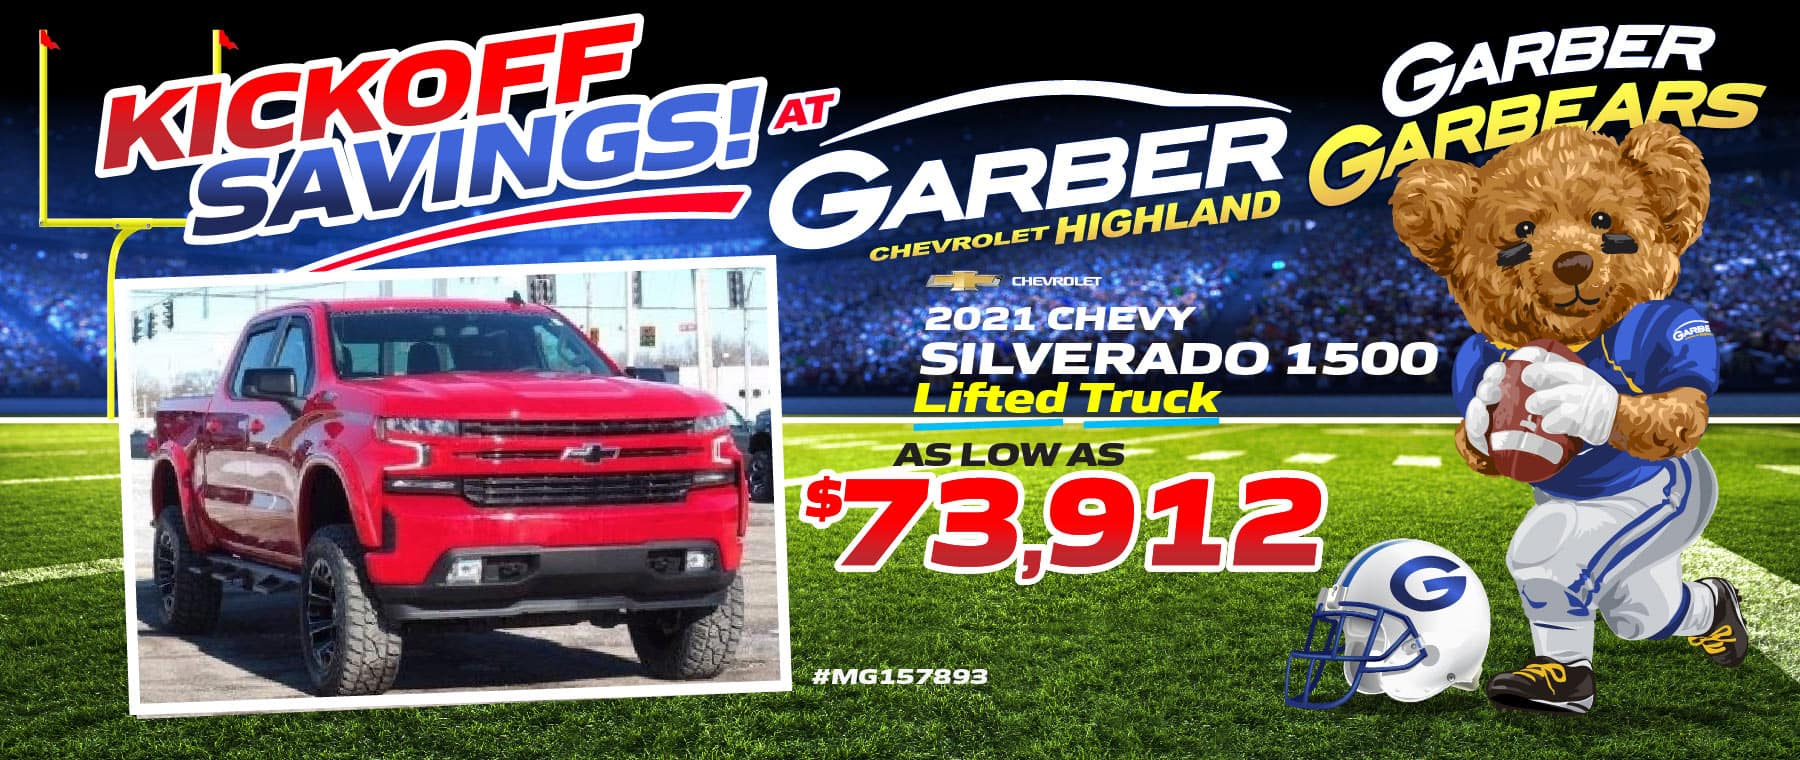 2021 Chevy Silverado - Lifted Truck - as low as $73912